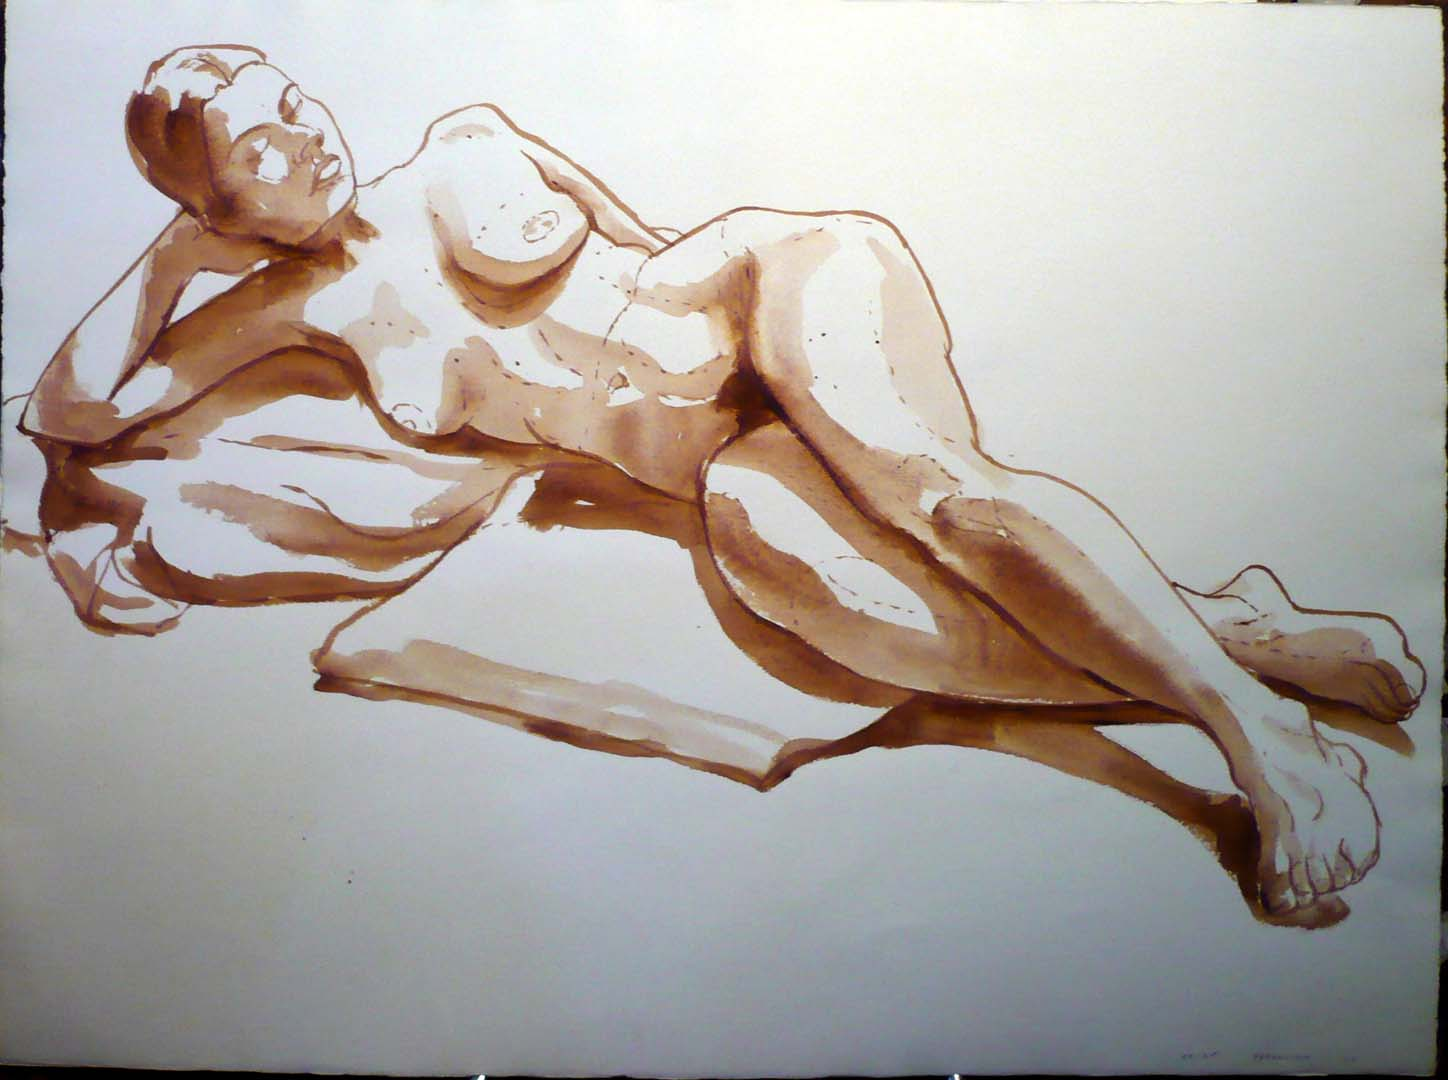 "1966 Female Nude Seated in Front of Male Nude Sepia Wash 22"" x 30"""